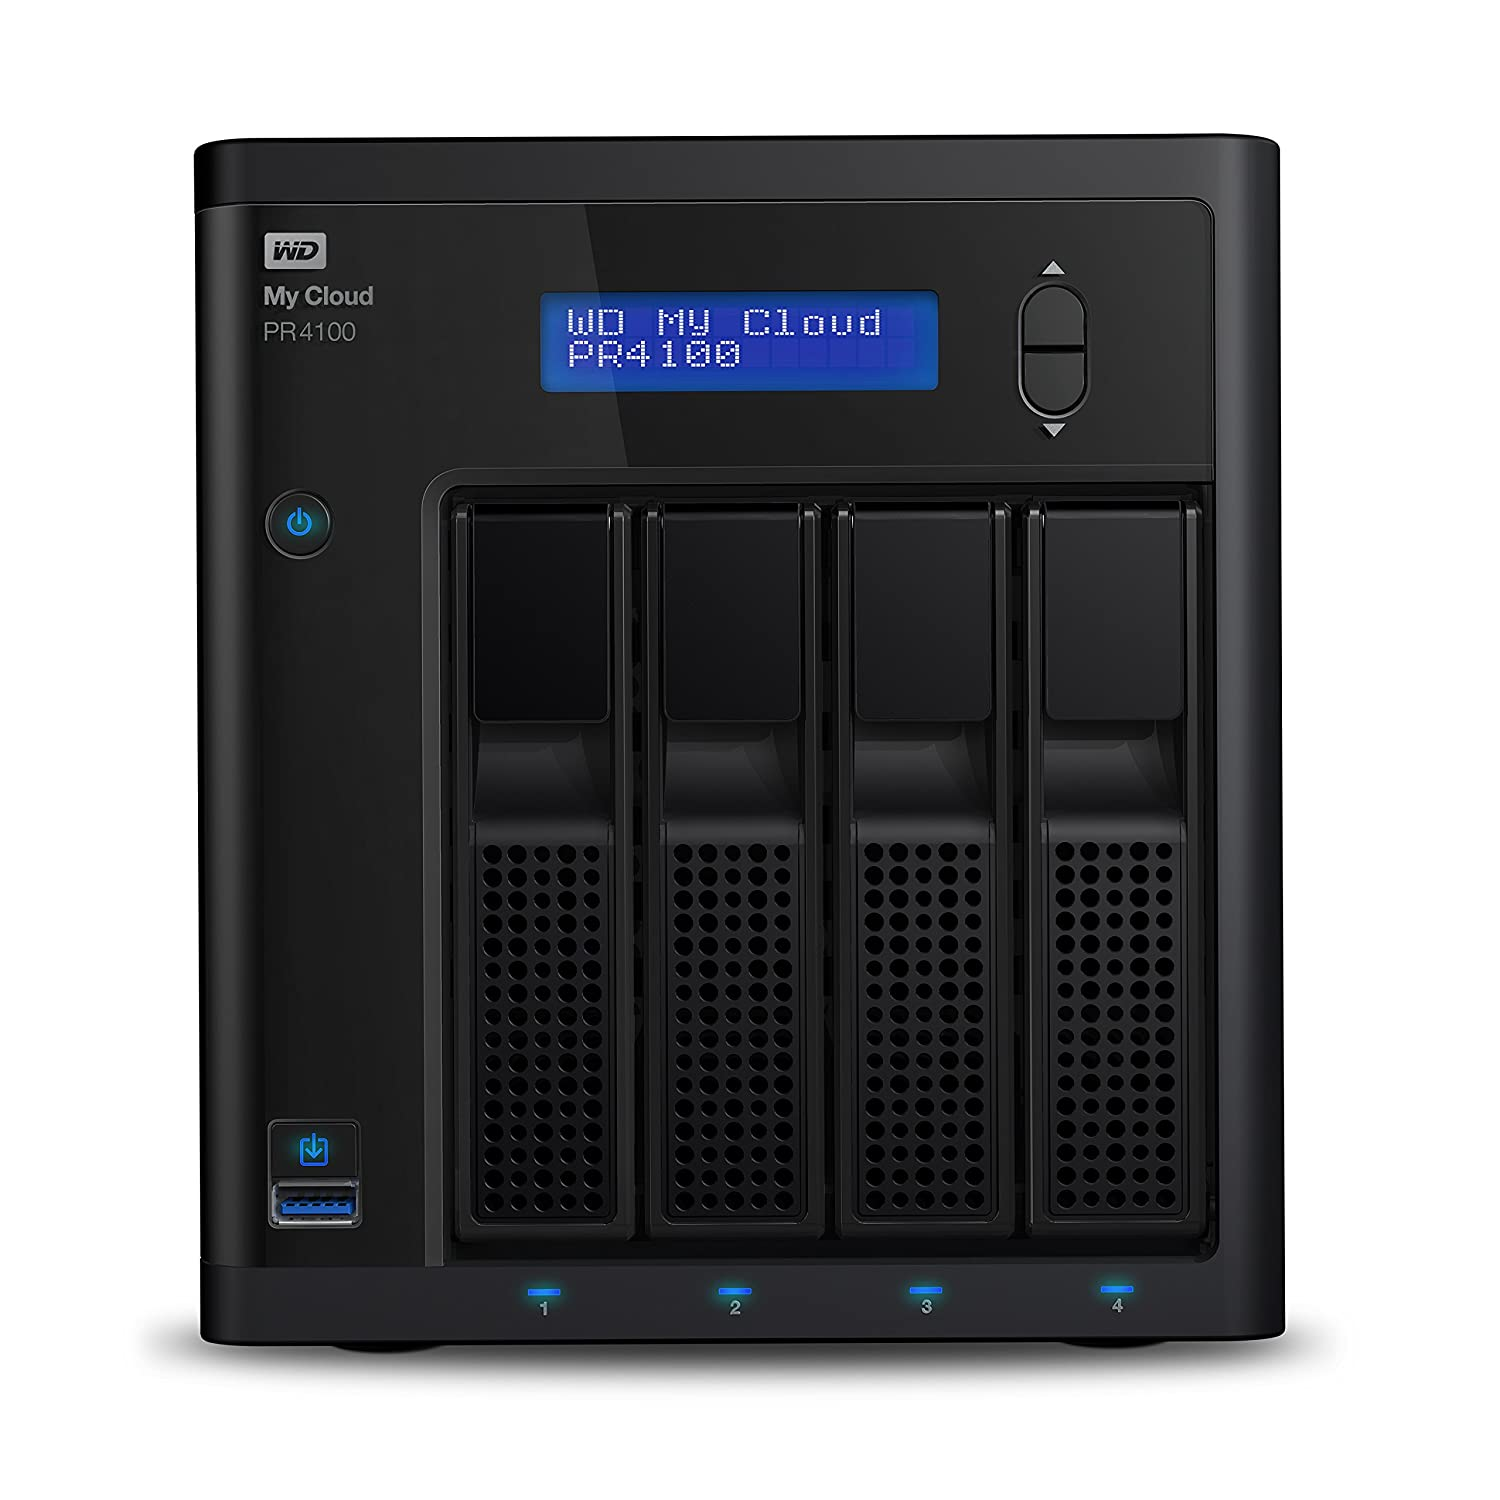 WD Diskless My Cloud Pro Series PR4100 Network Attached Storage - NAS - WDBNFA0000NBK-NESN